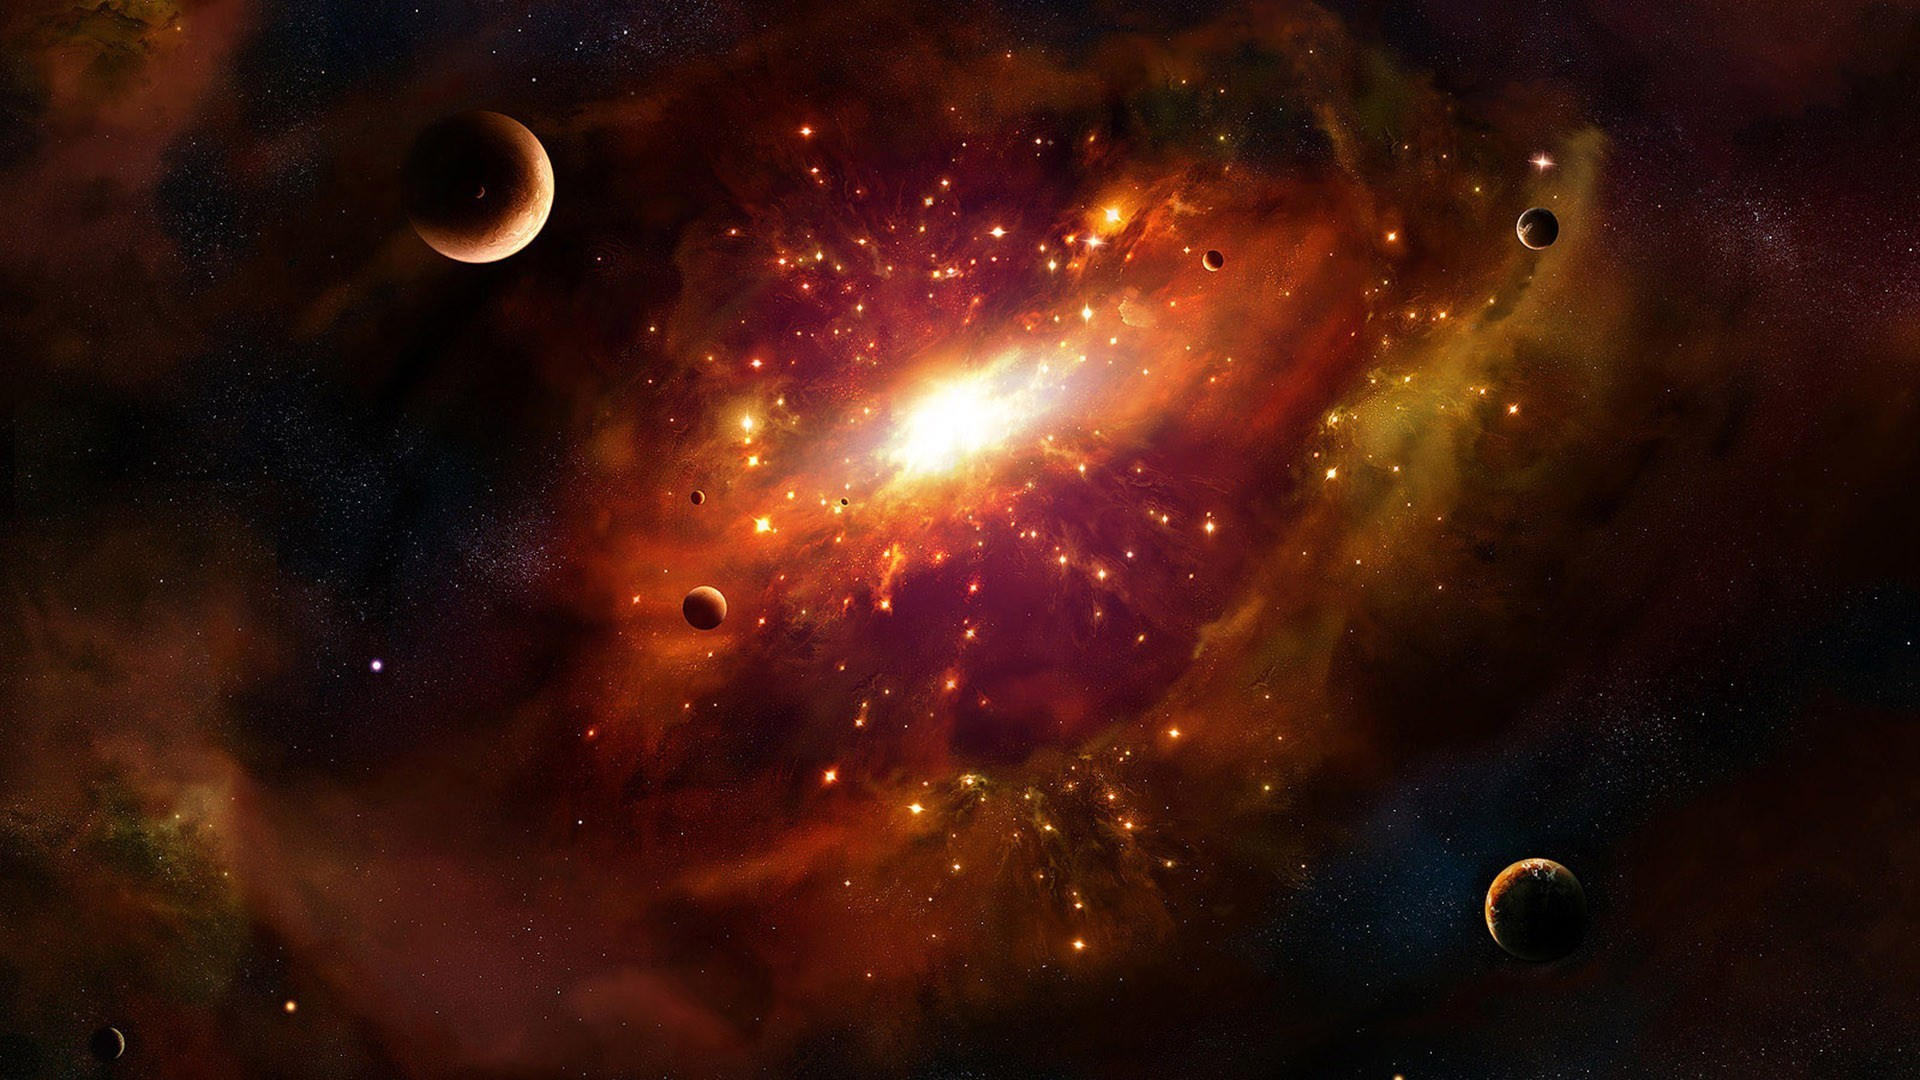 Cool Galaxy Wallpaper Images Pictures   Becuo 1920x1080